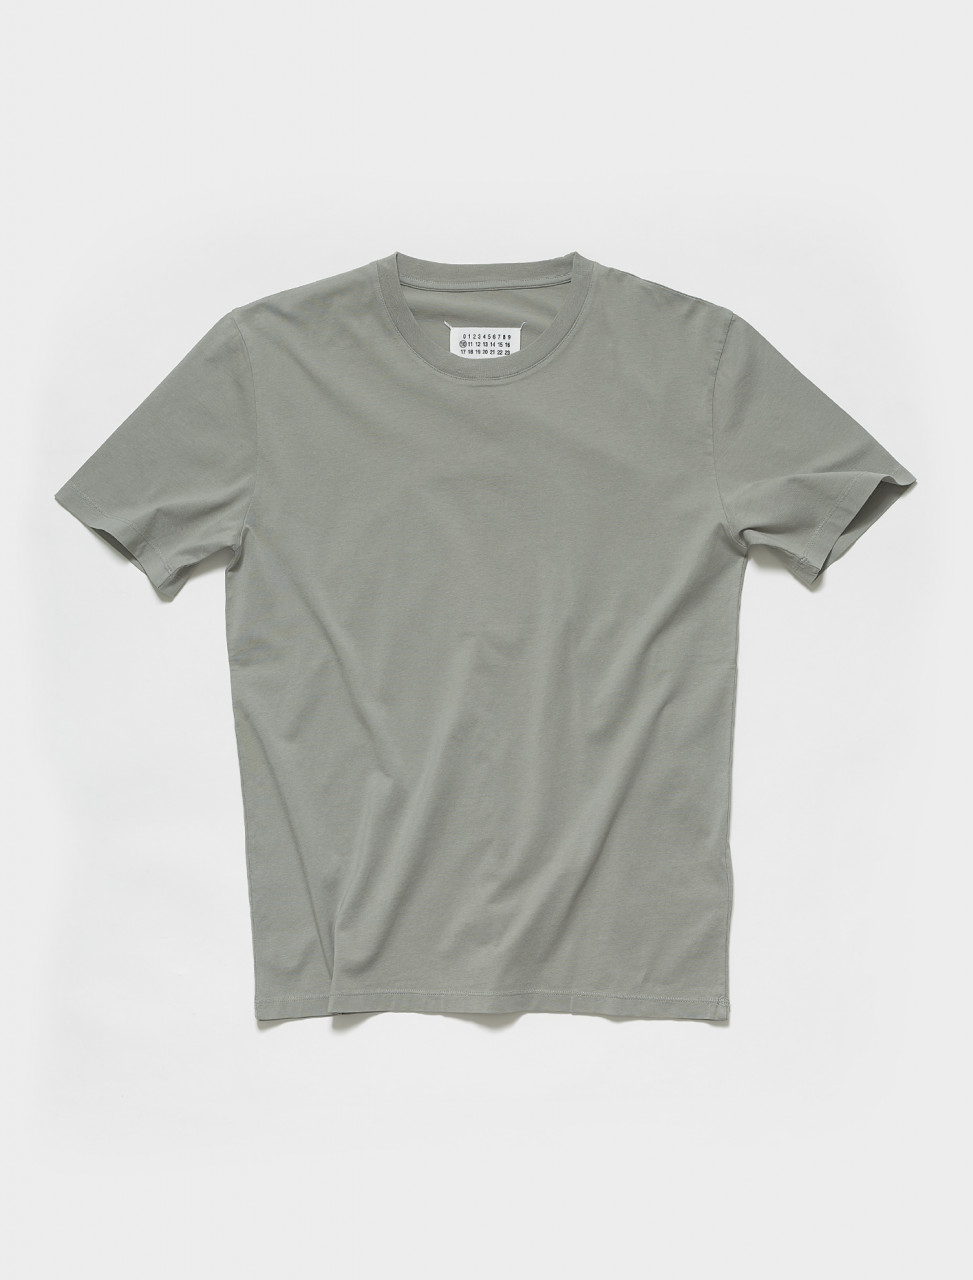 S50GC0622 MAISON MARGIELA T SHIRT IN SAGE